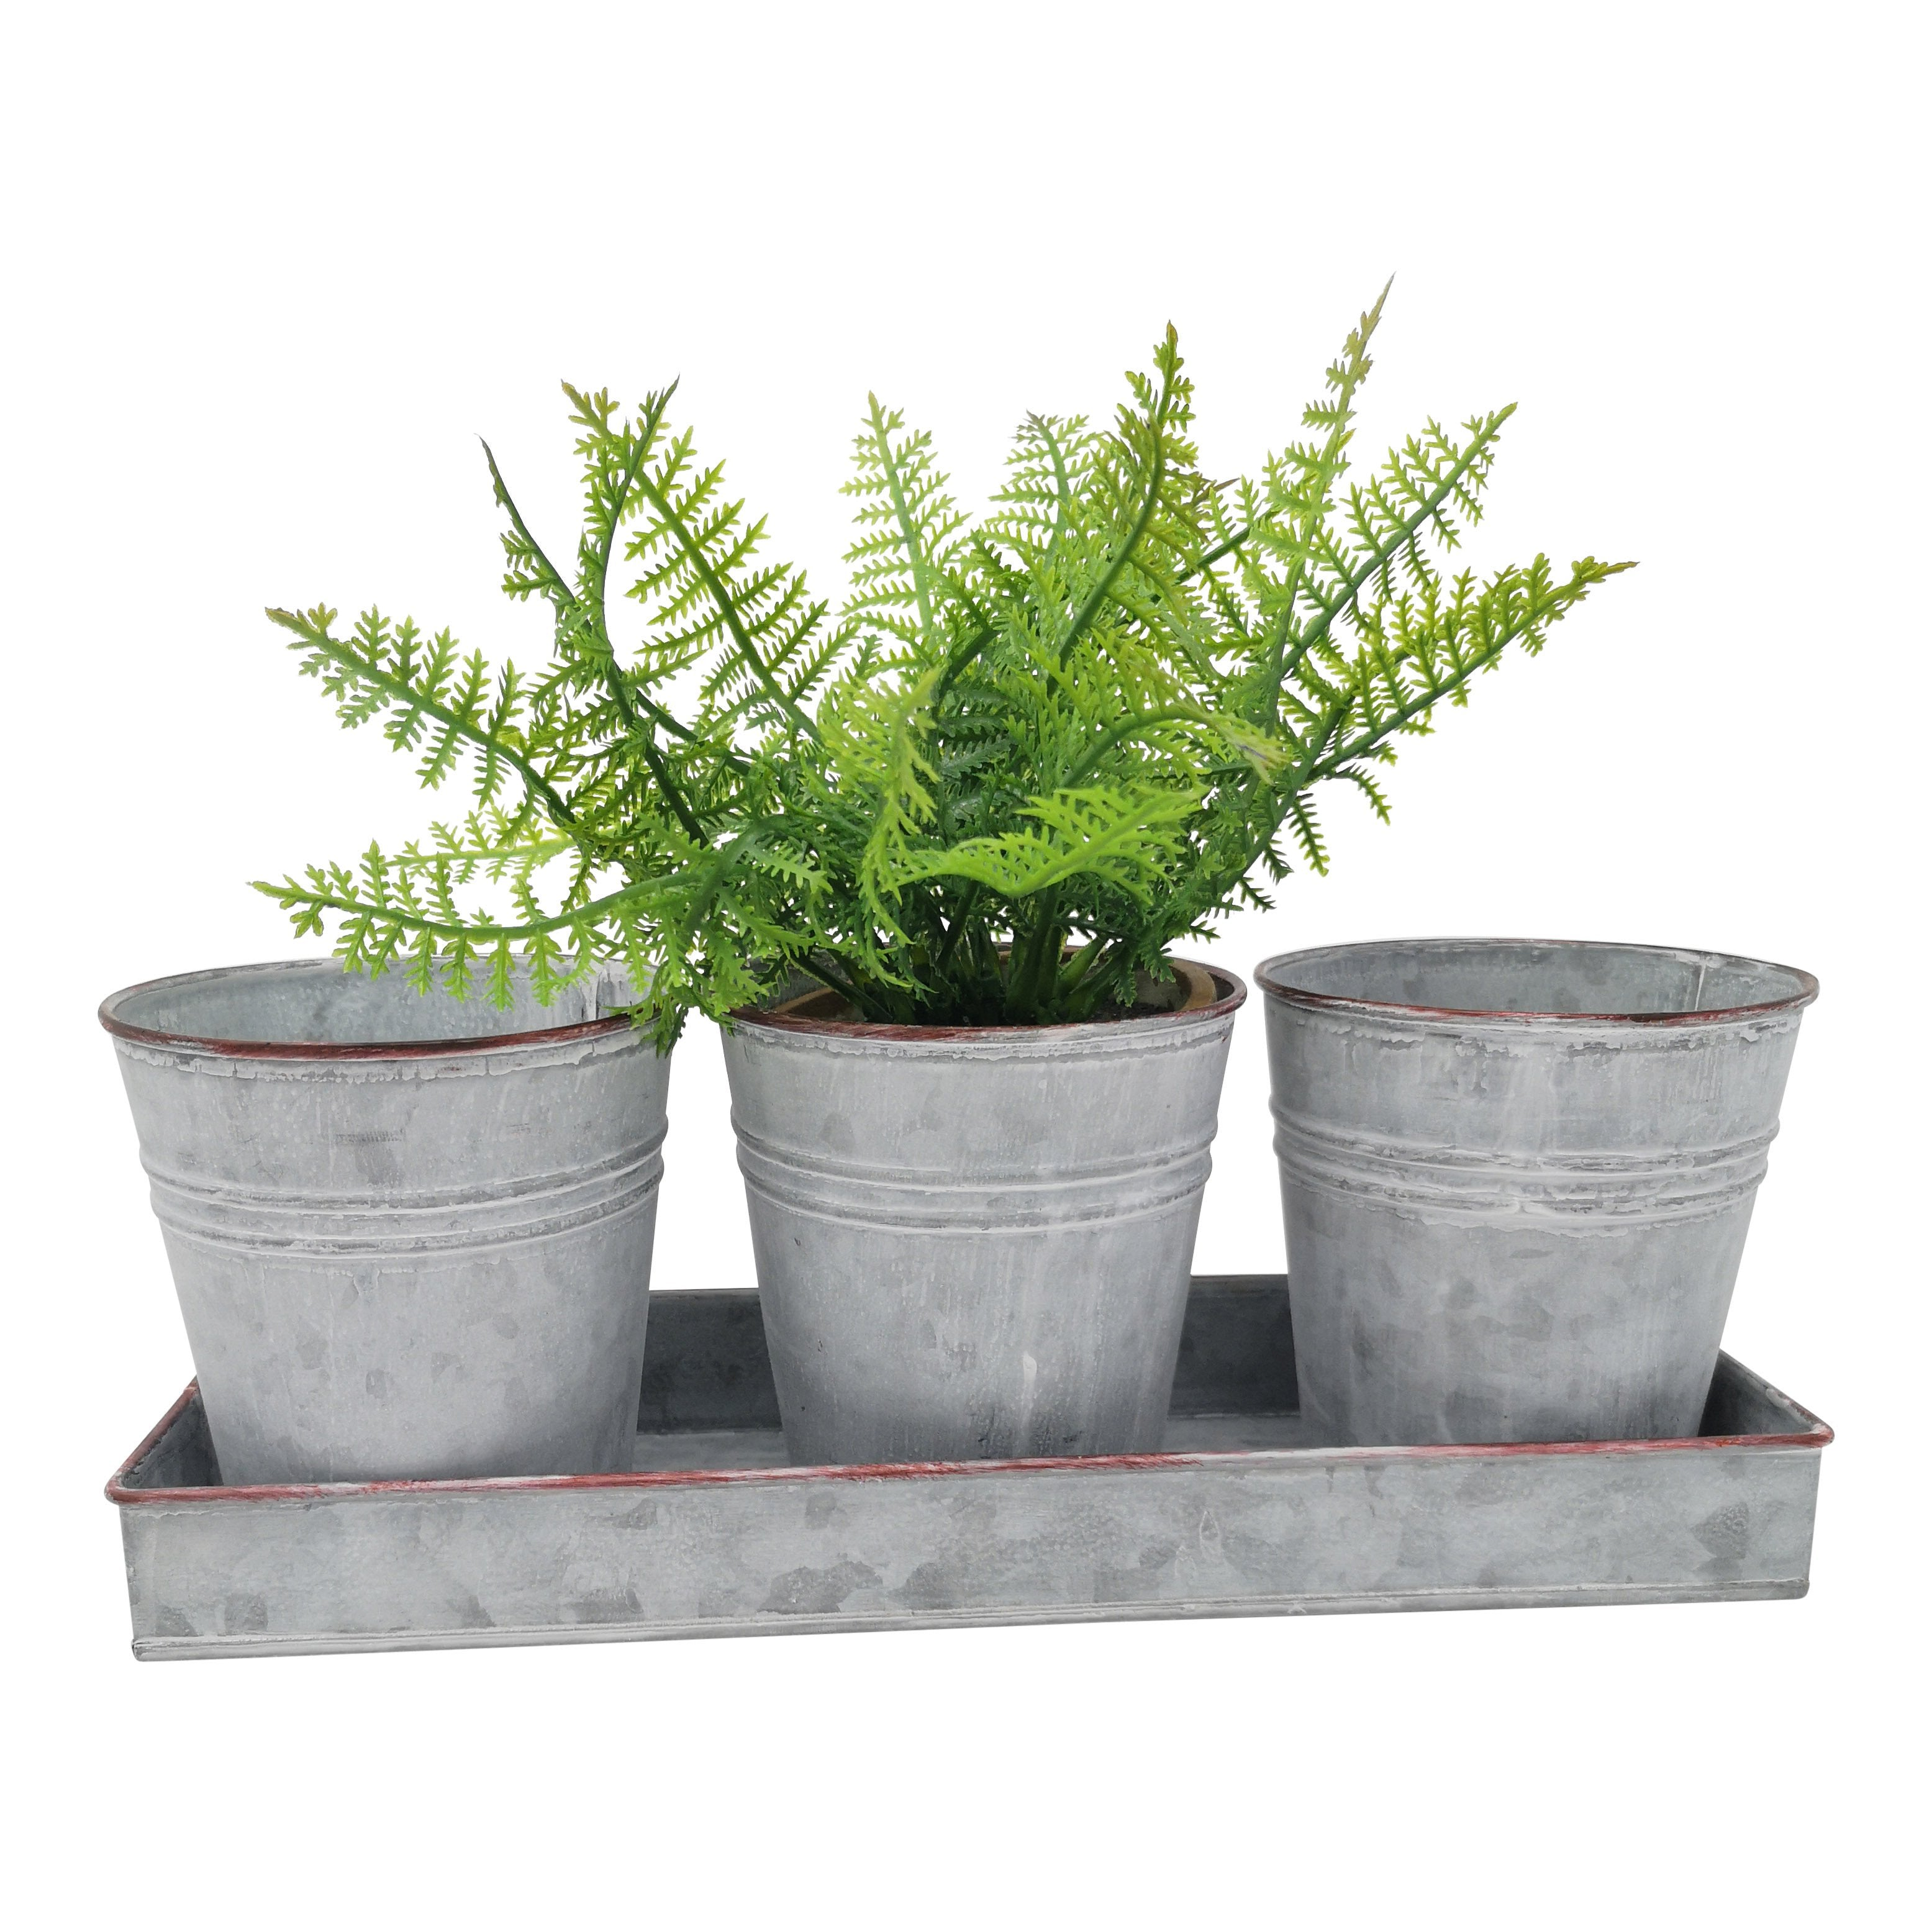 Zinc Tray with 3 Pots